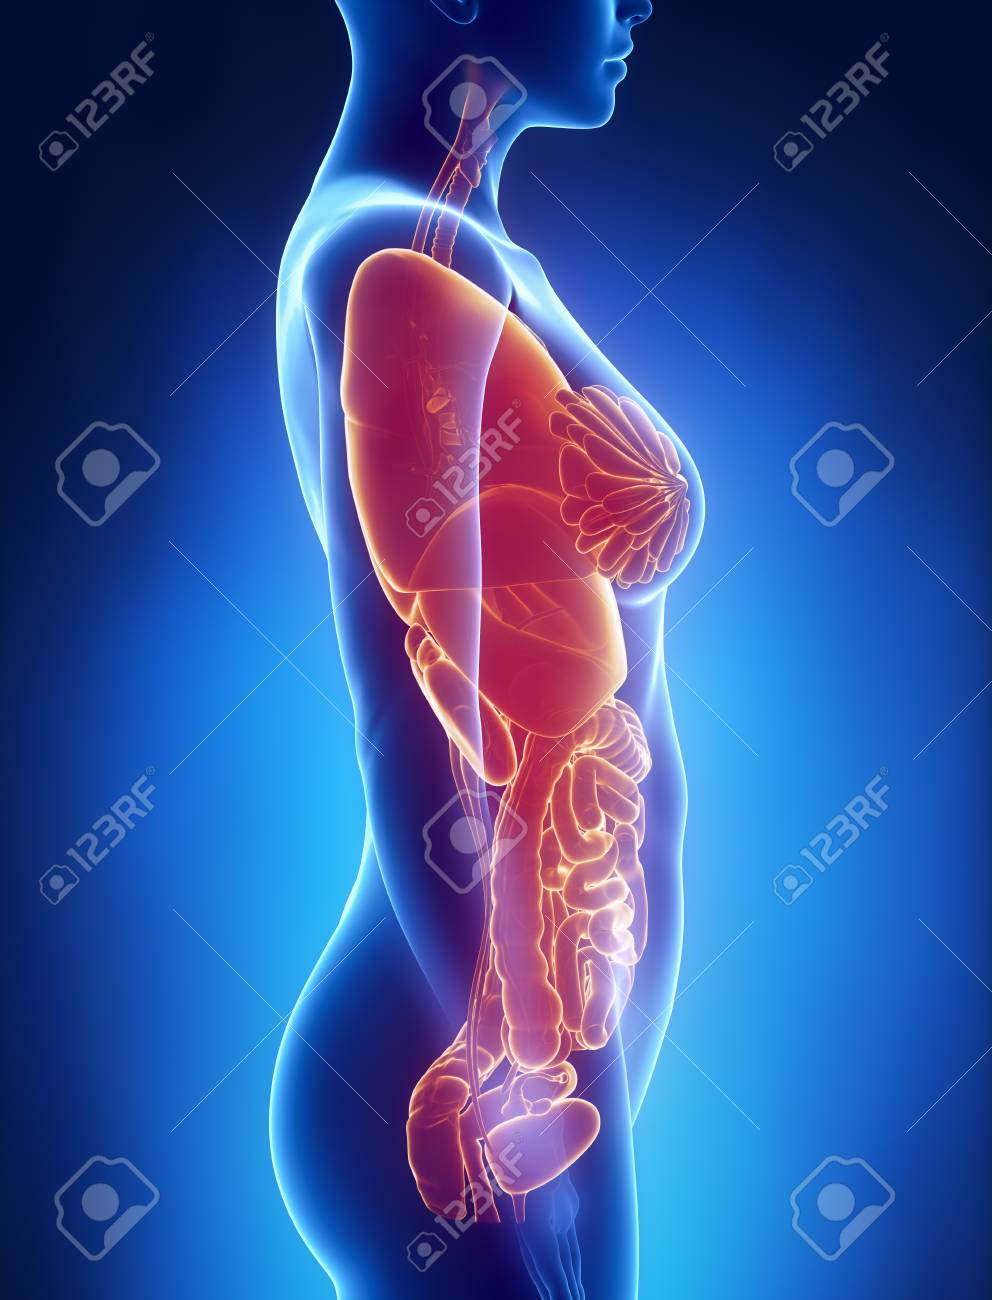 Female Organs Anatomy X Ray Left View Stock Photo Picture And